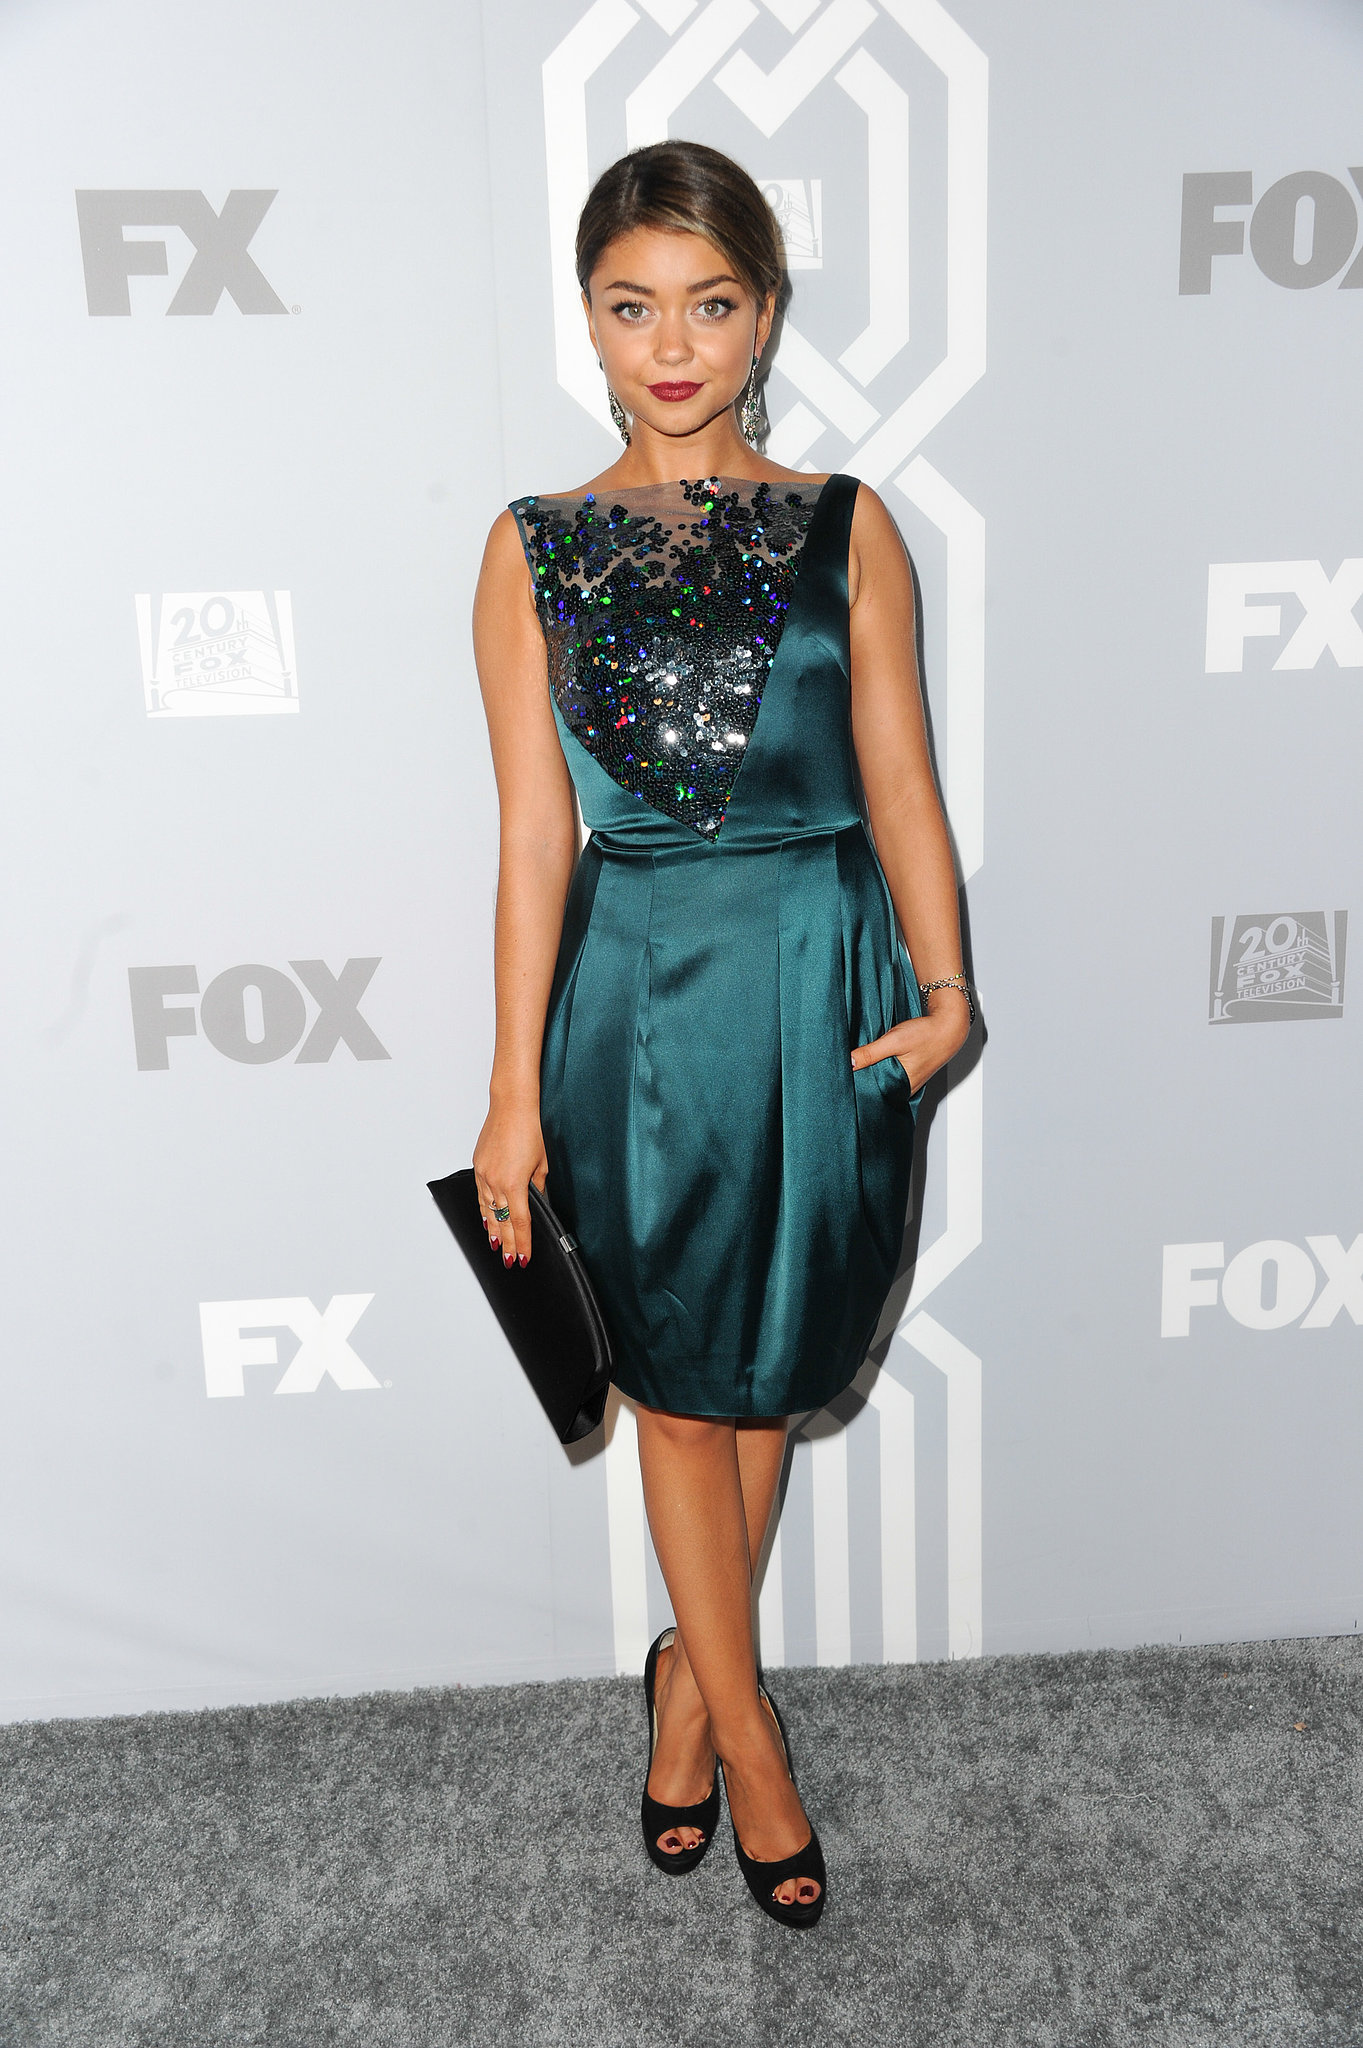 Sarah Hyland stepped out for Fox's afterparty in an embelli